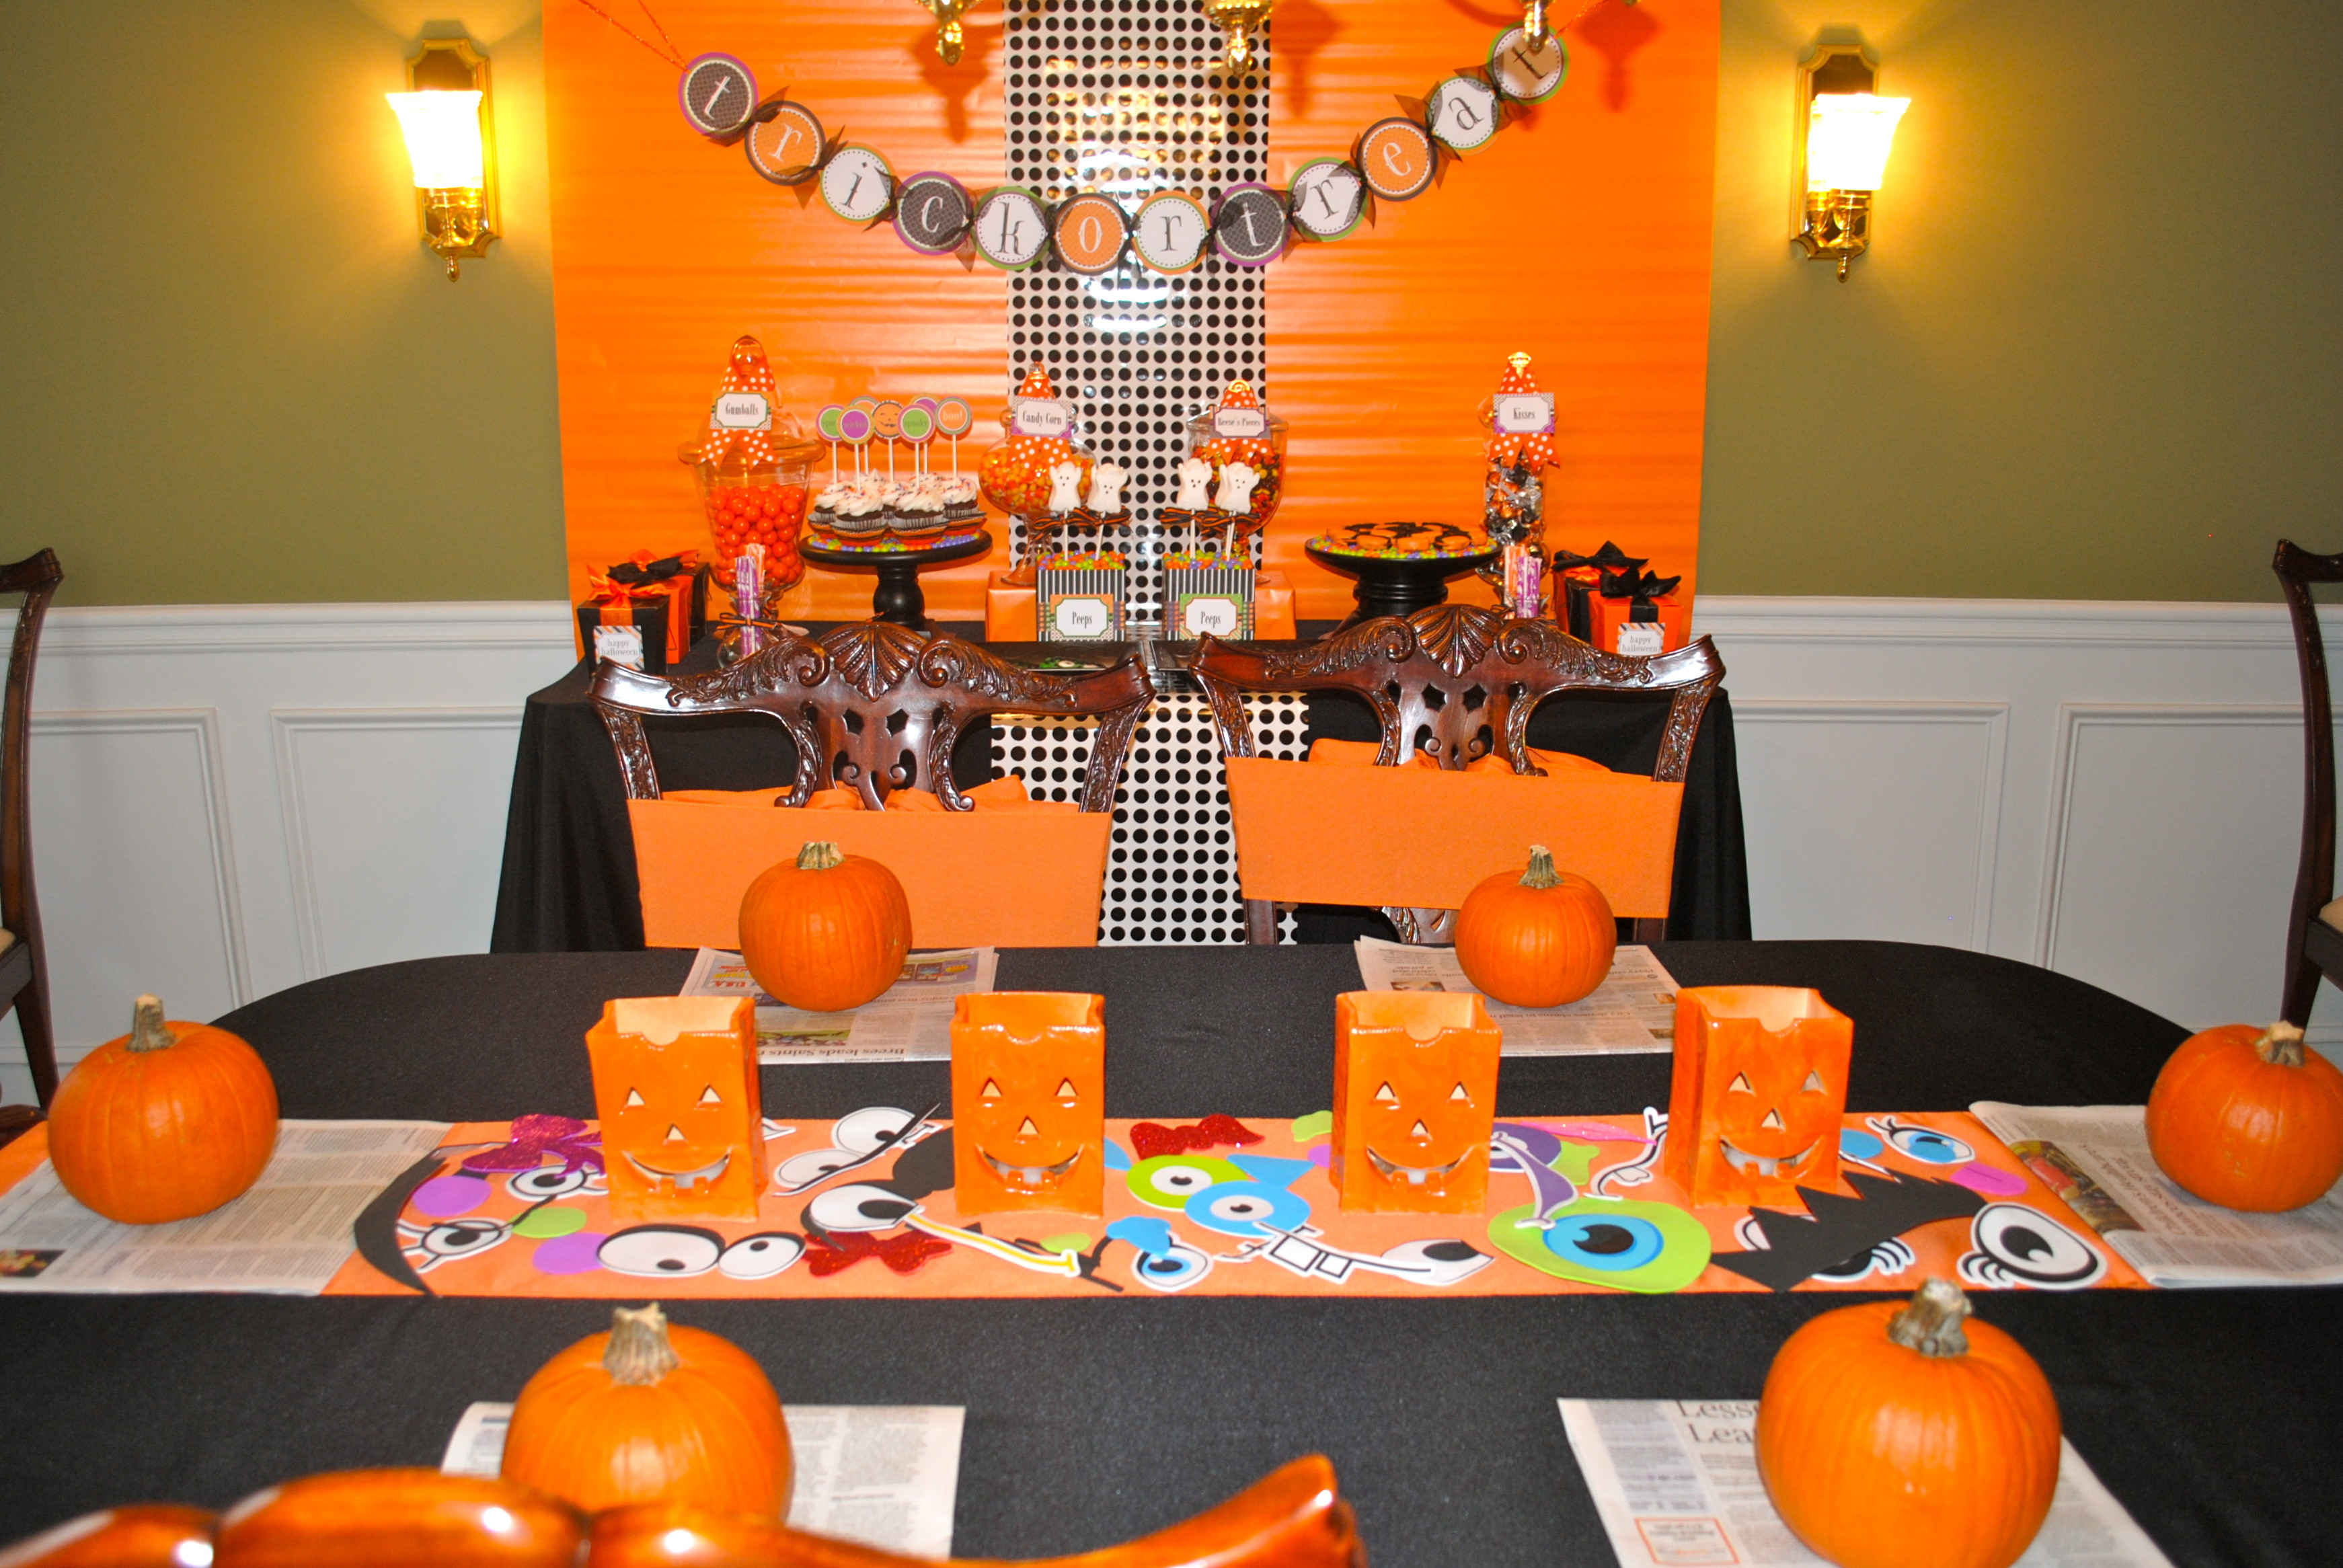 Halloween Ideas For Kids Party  Halloween Party Ideas For Kids 2019 With Daily